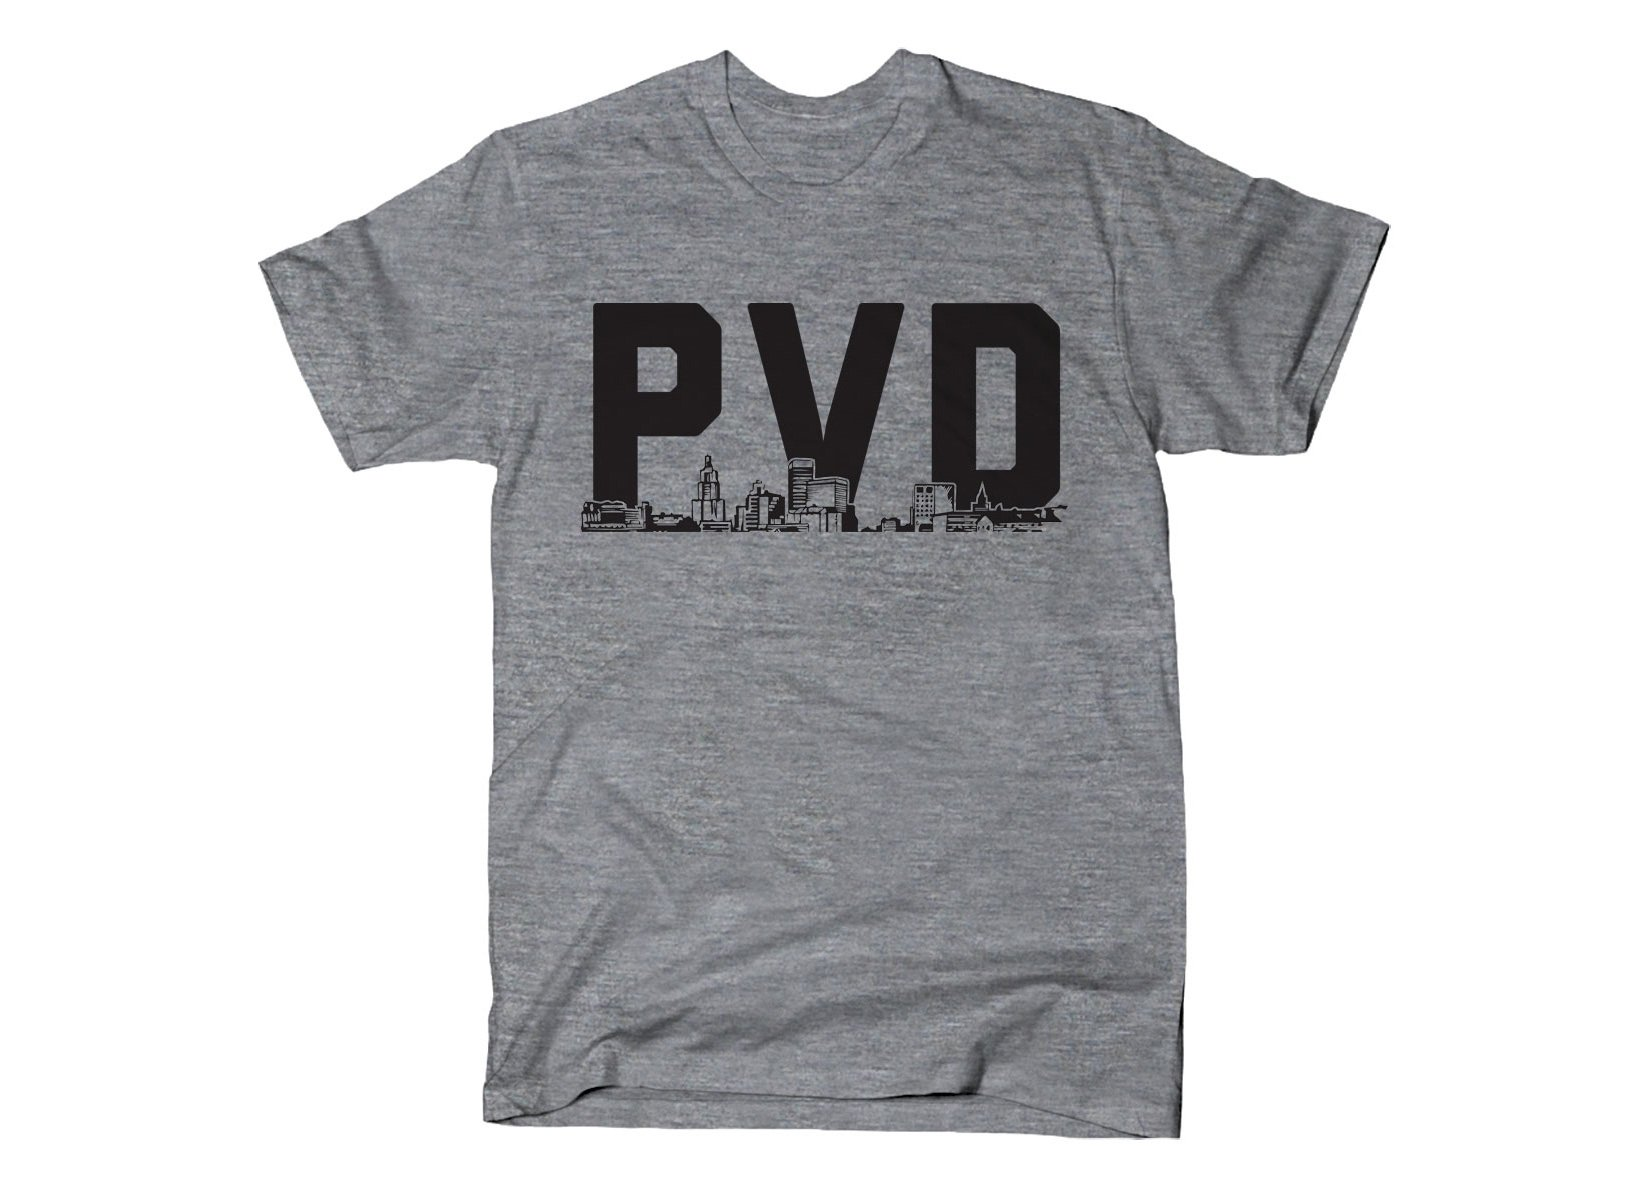 PVD Shirt on Mens T-Shirt